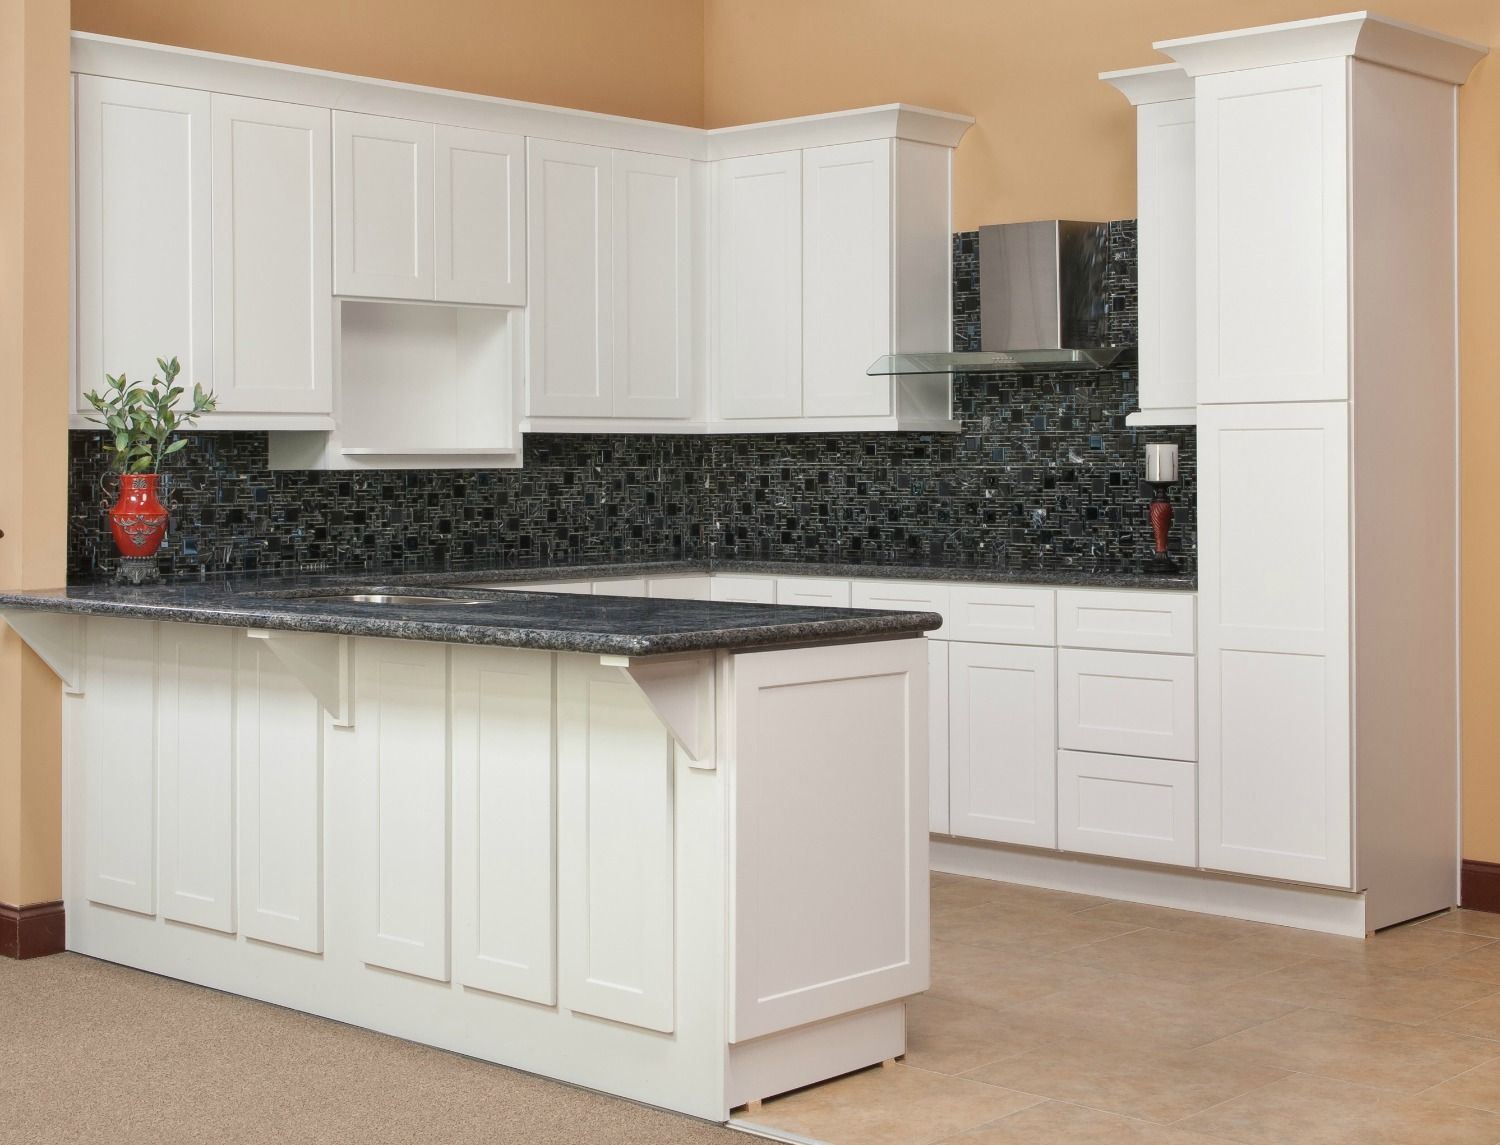 rta kitchen of the day rta kitchen cabinets View our kitchen cabinets online today to find great deals